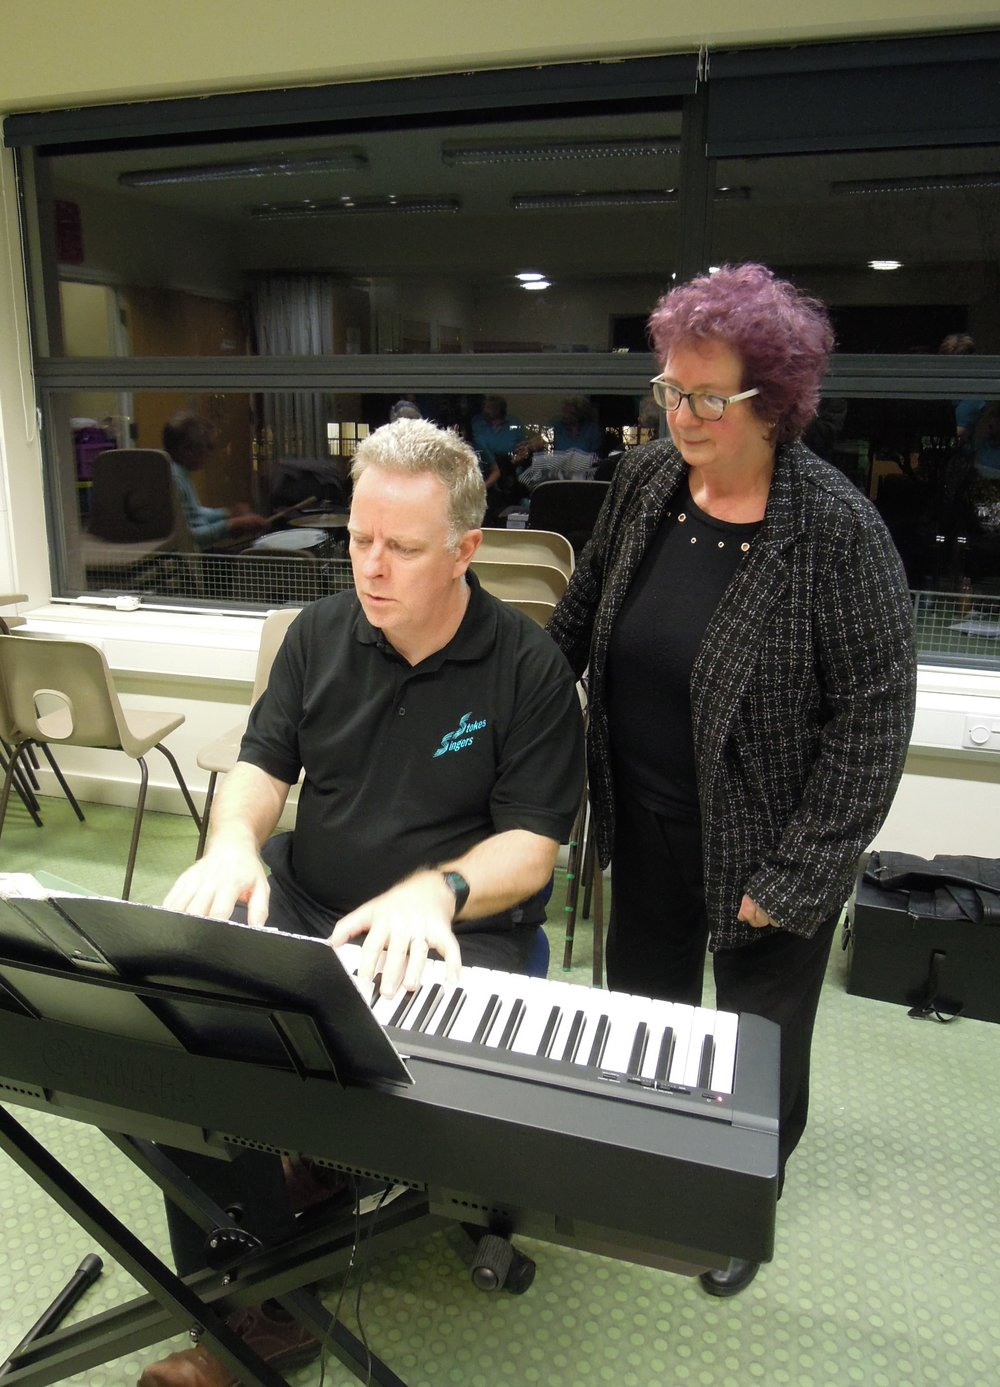 Phil and Sian, our Musical Directors